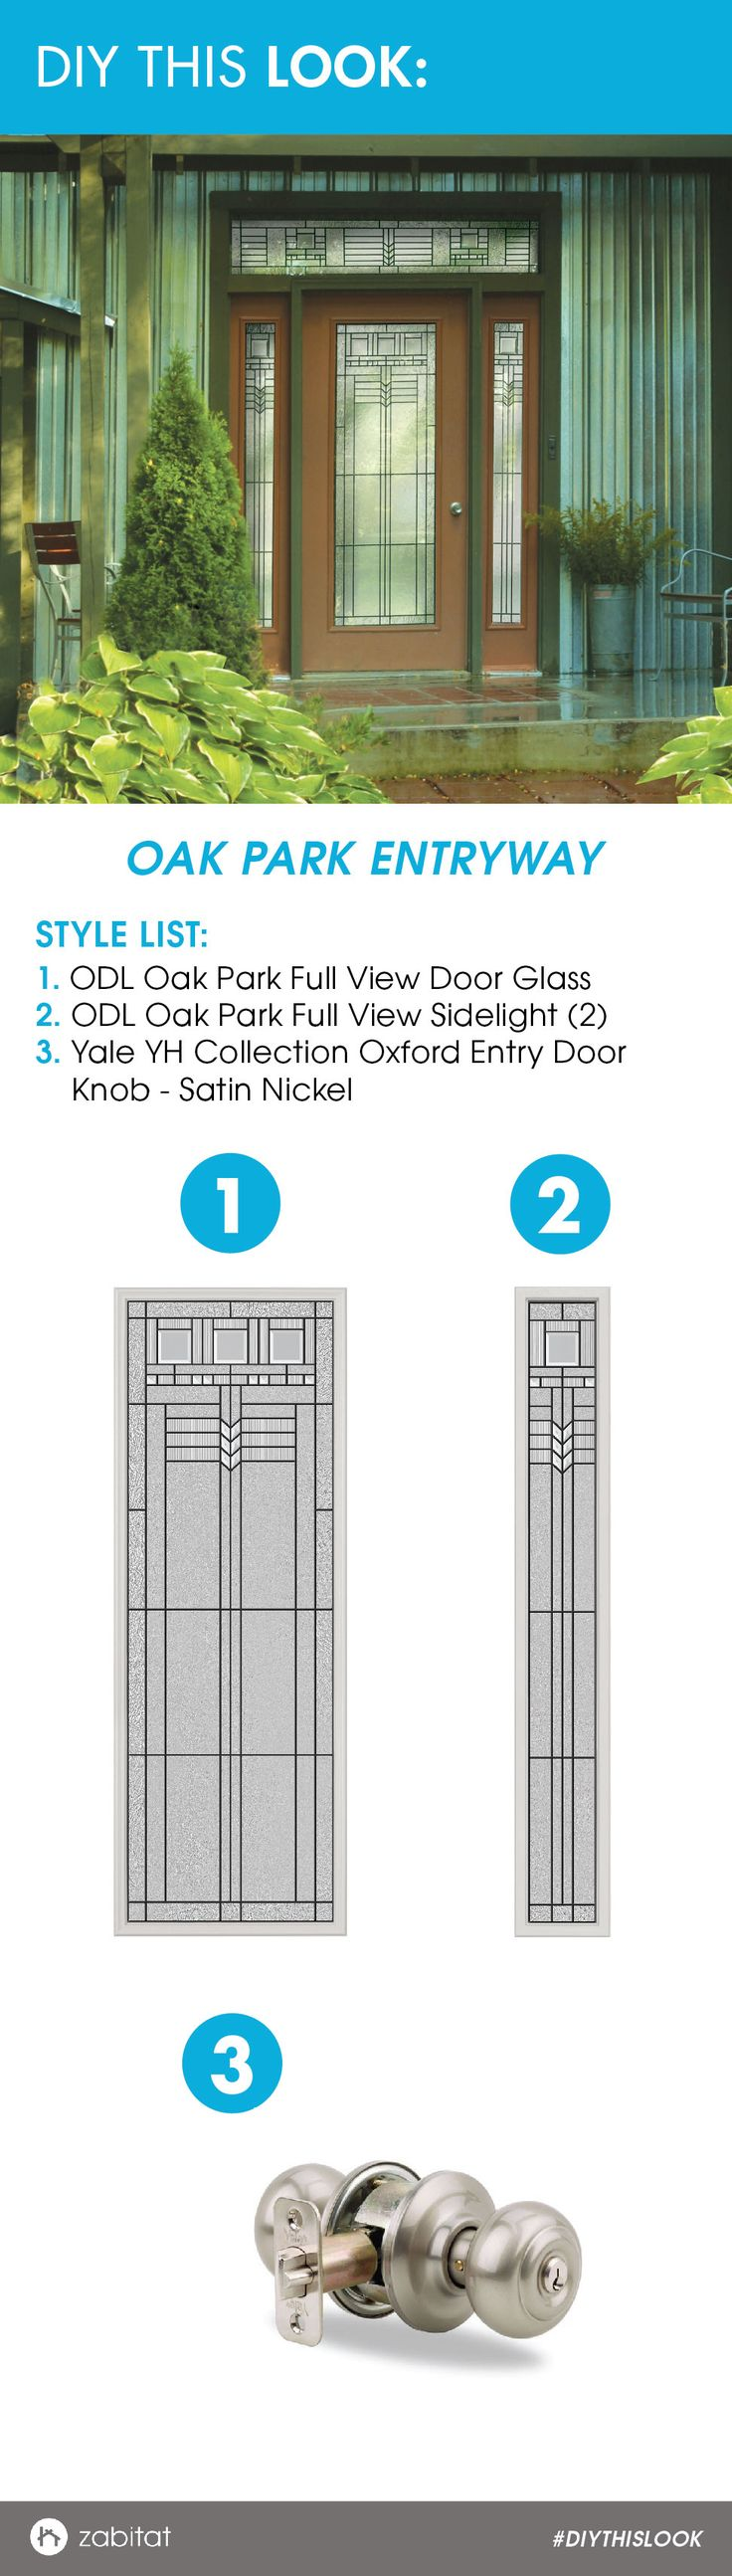 ODL Oak Park Door Glass Insert paired with a Yale Satin Nickel entry knob.